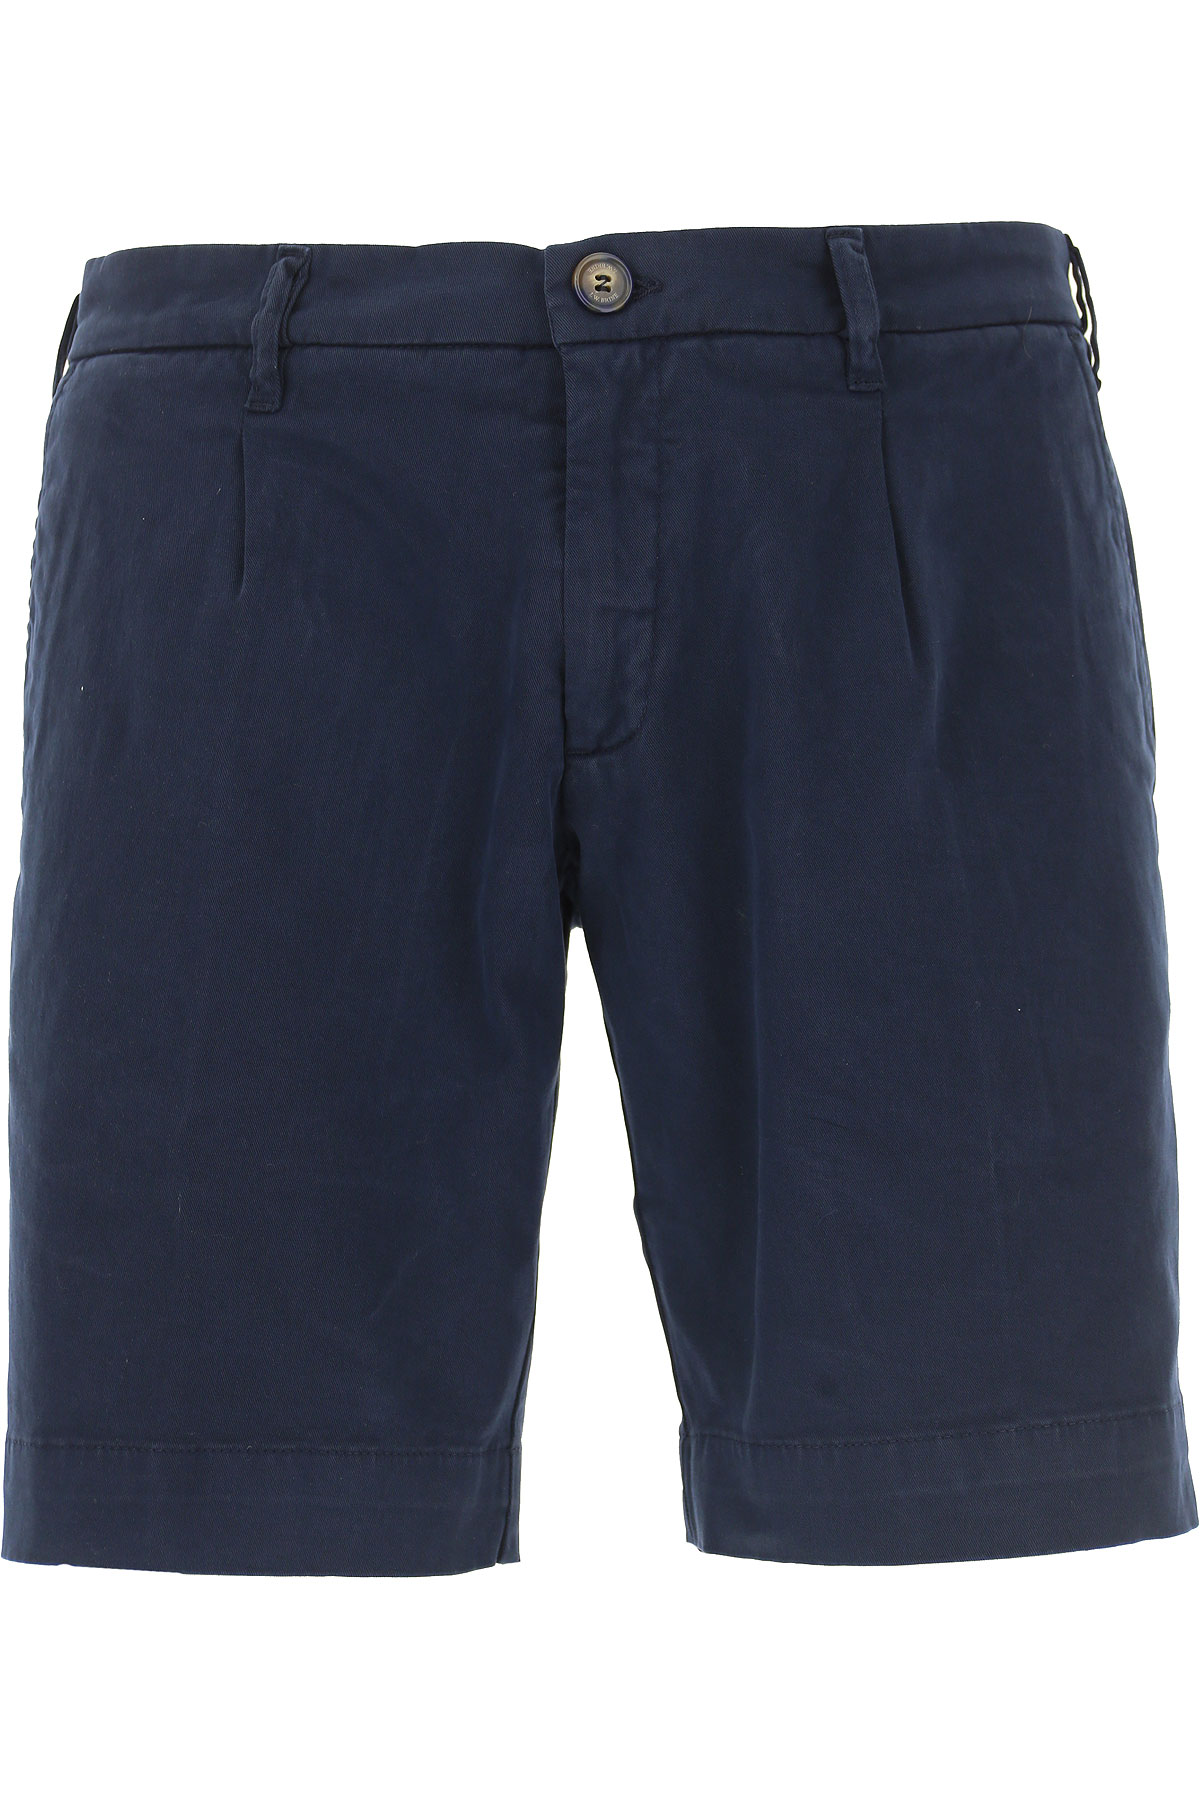 J.W. Brine Pants for Men, navy, Cotton, 2019, 32 38